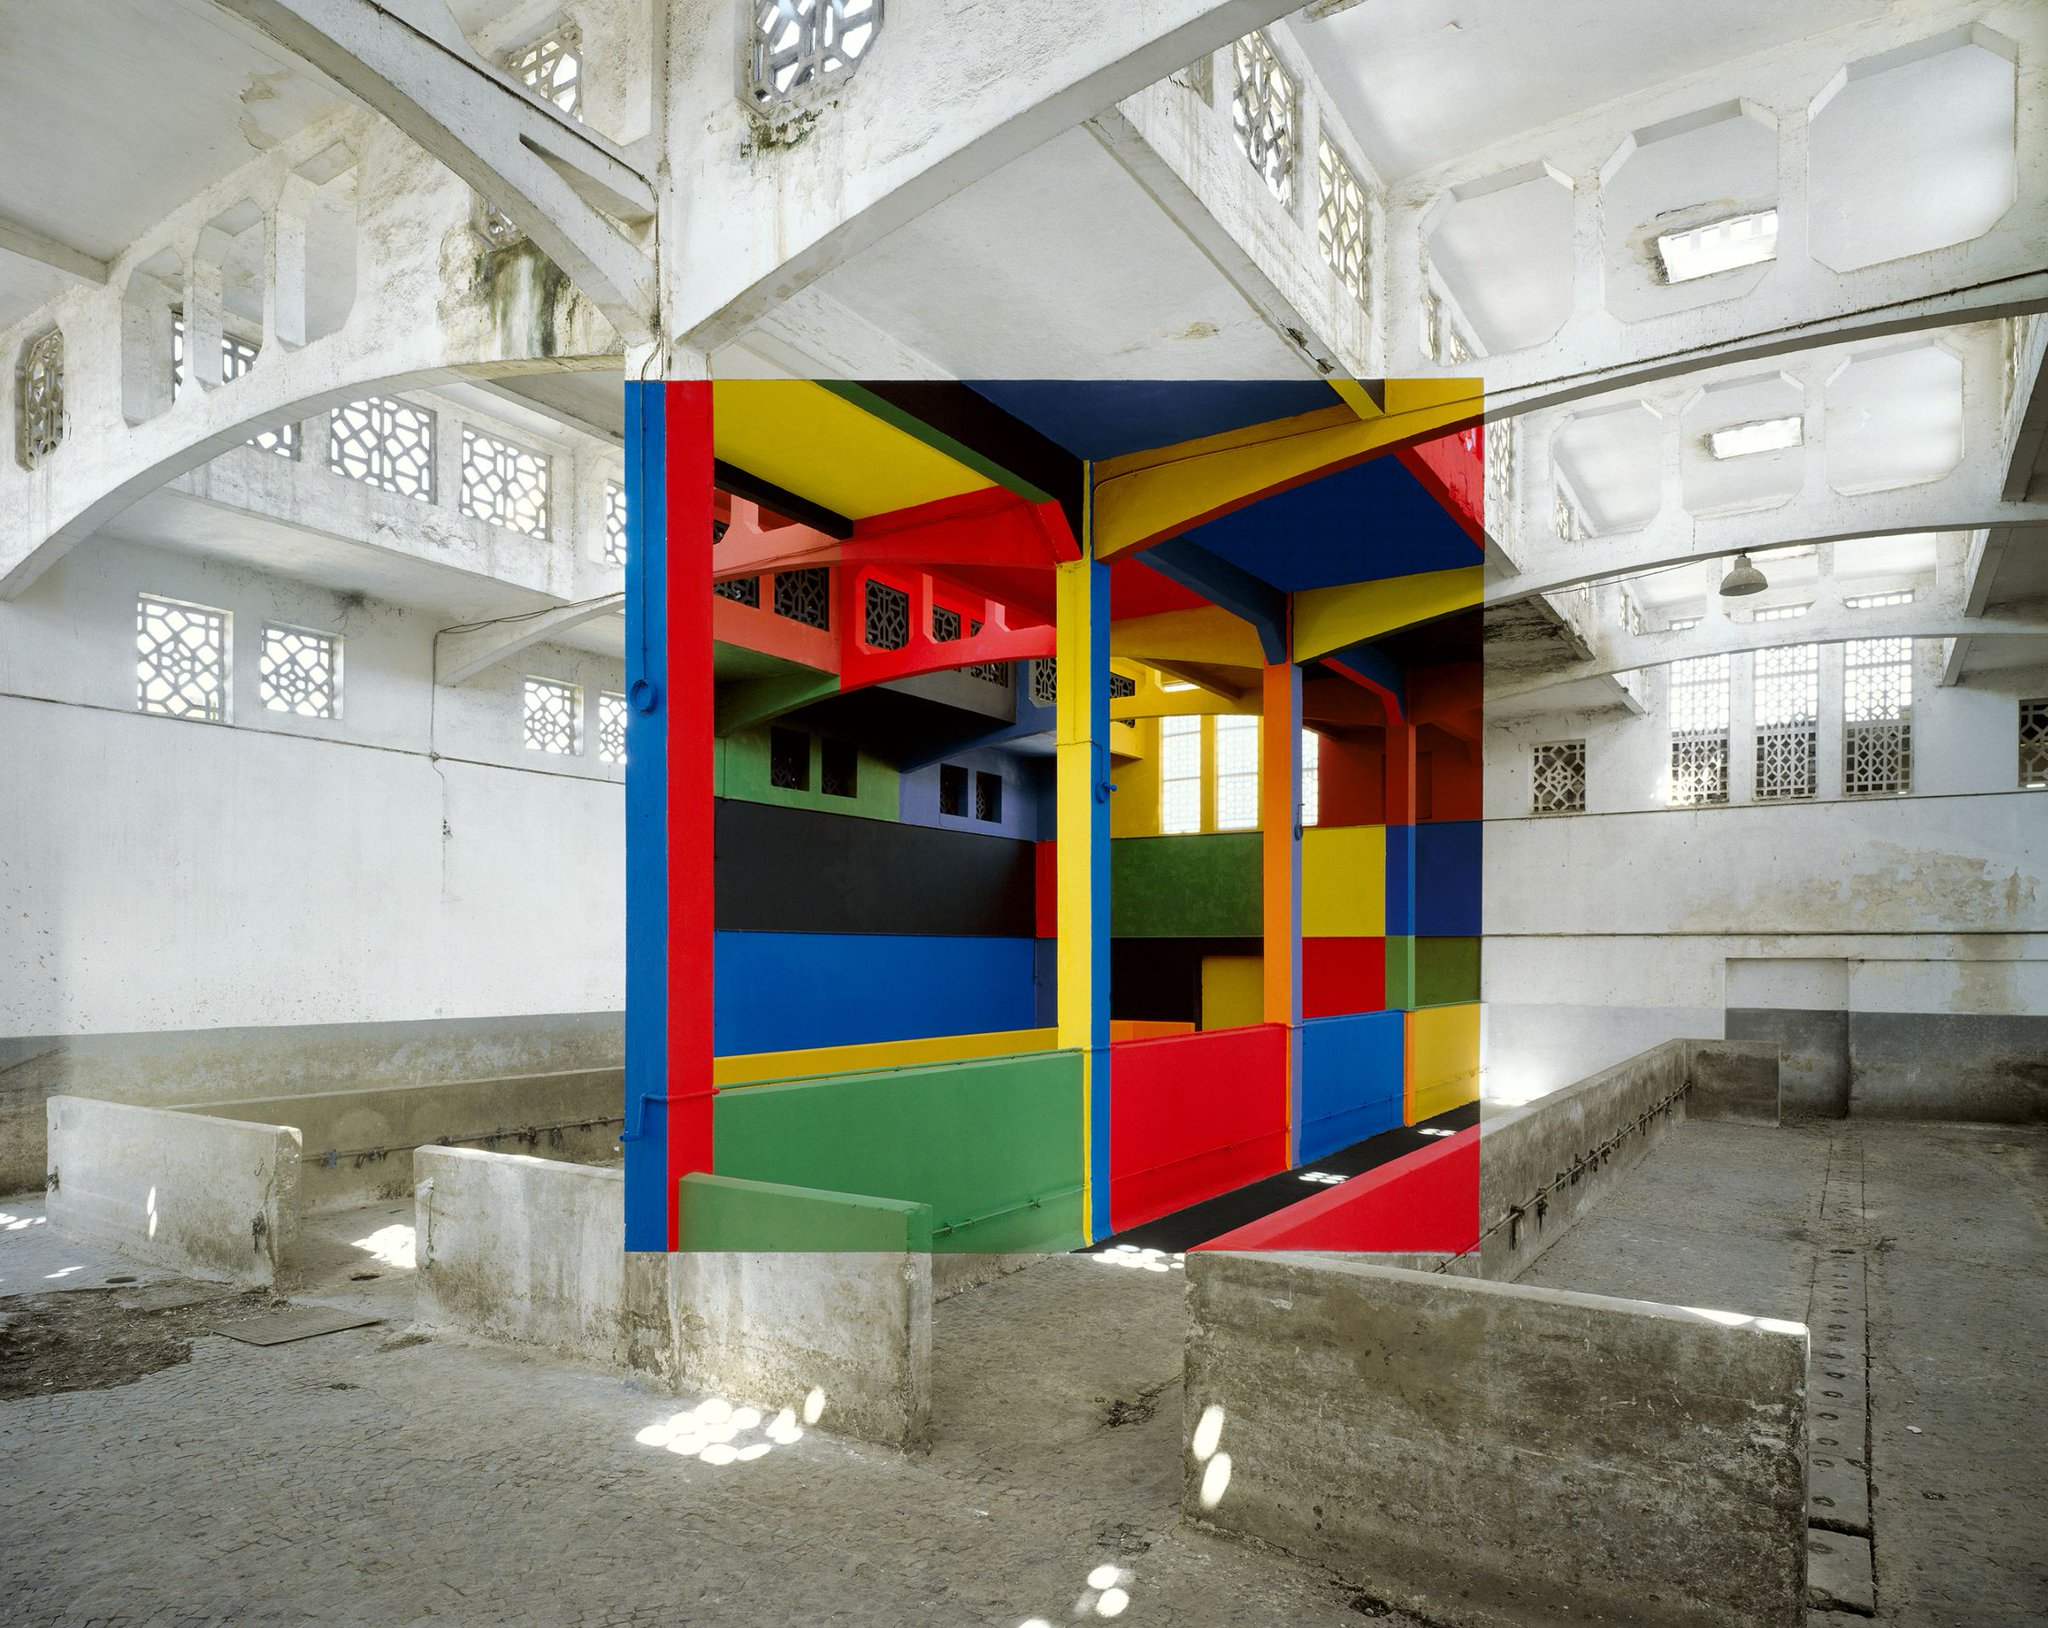 This room is NOT photoshopped. Made by the artist Georges Rousse, France. http://t.co/e3nCL7BUJt